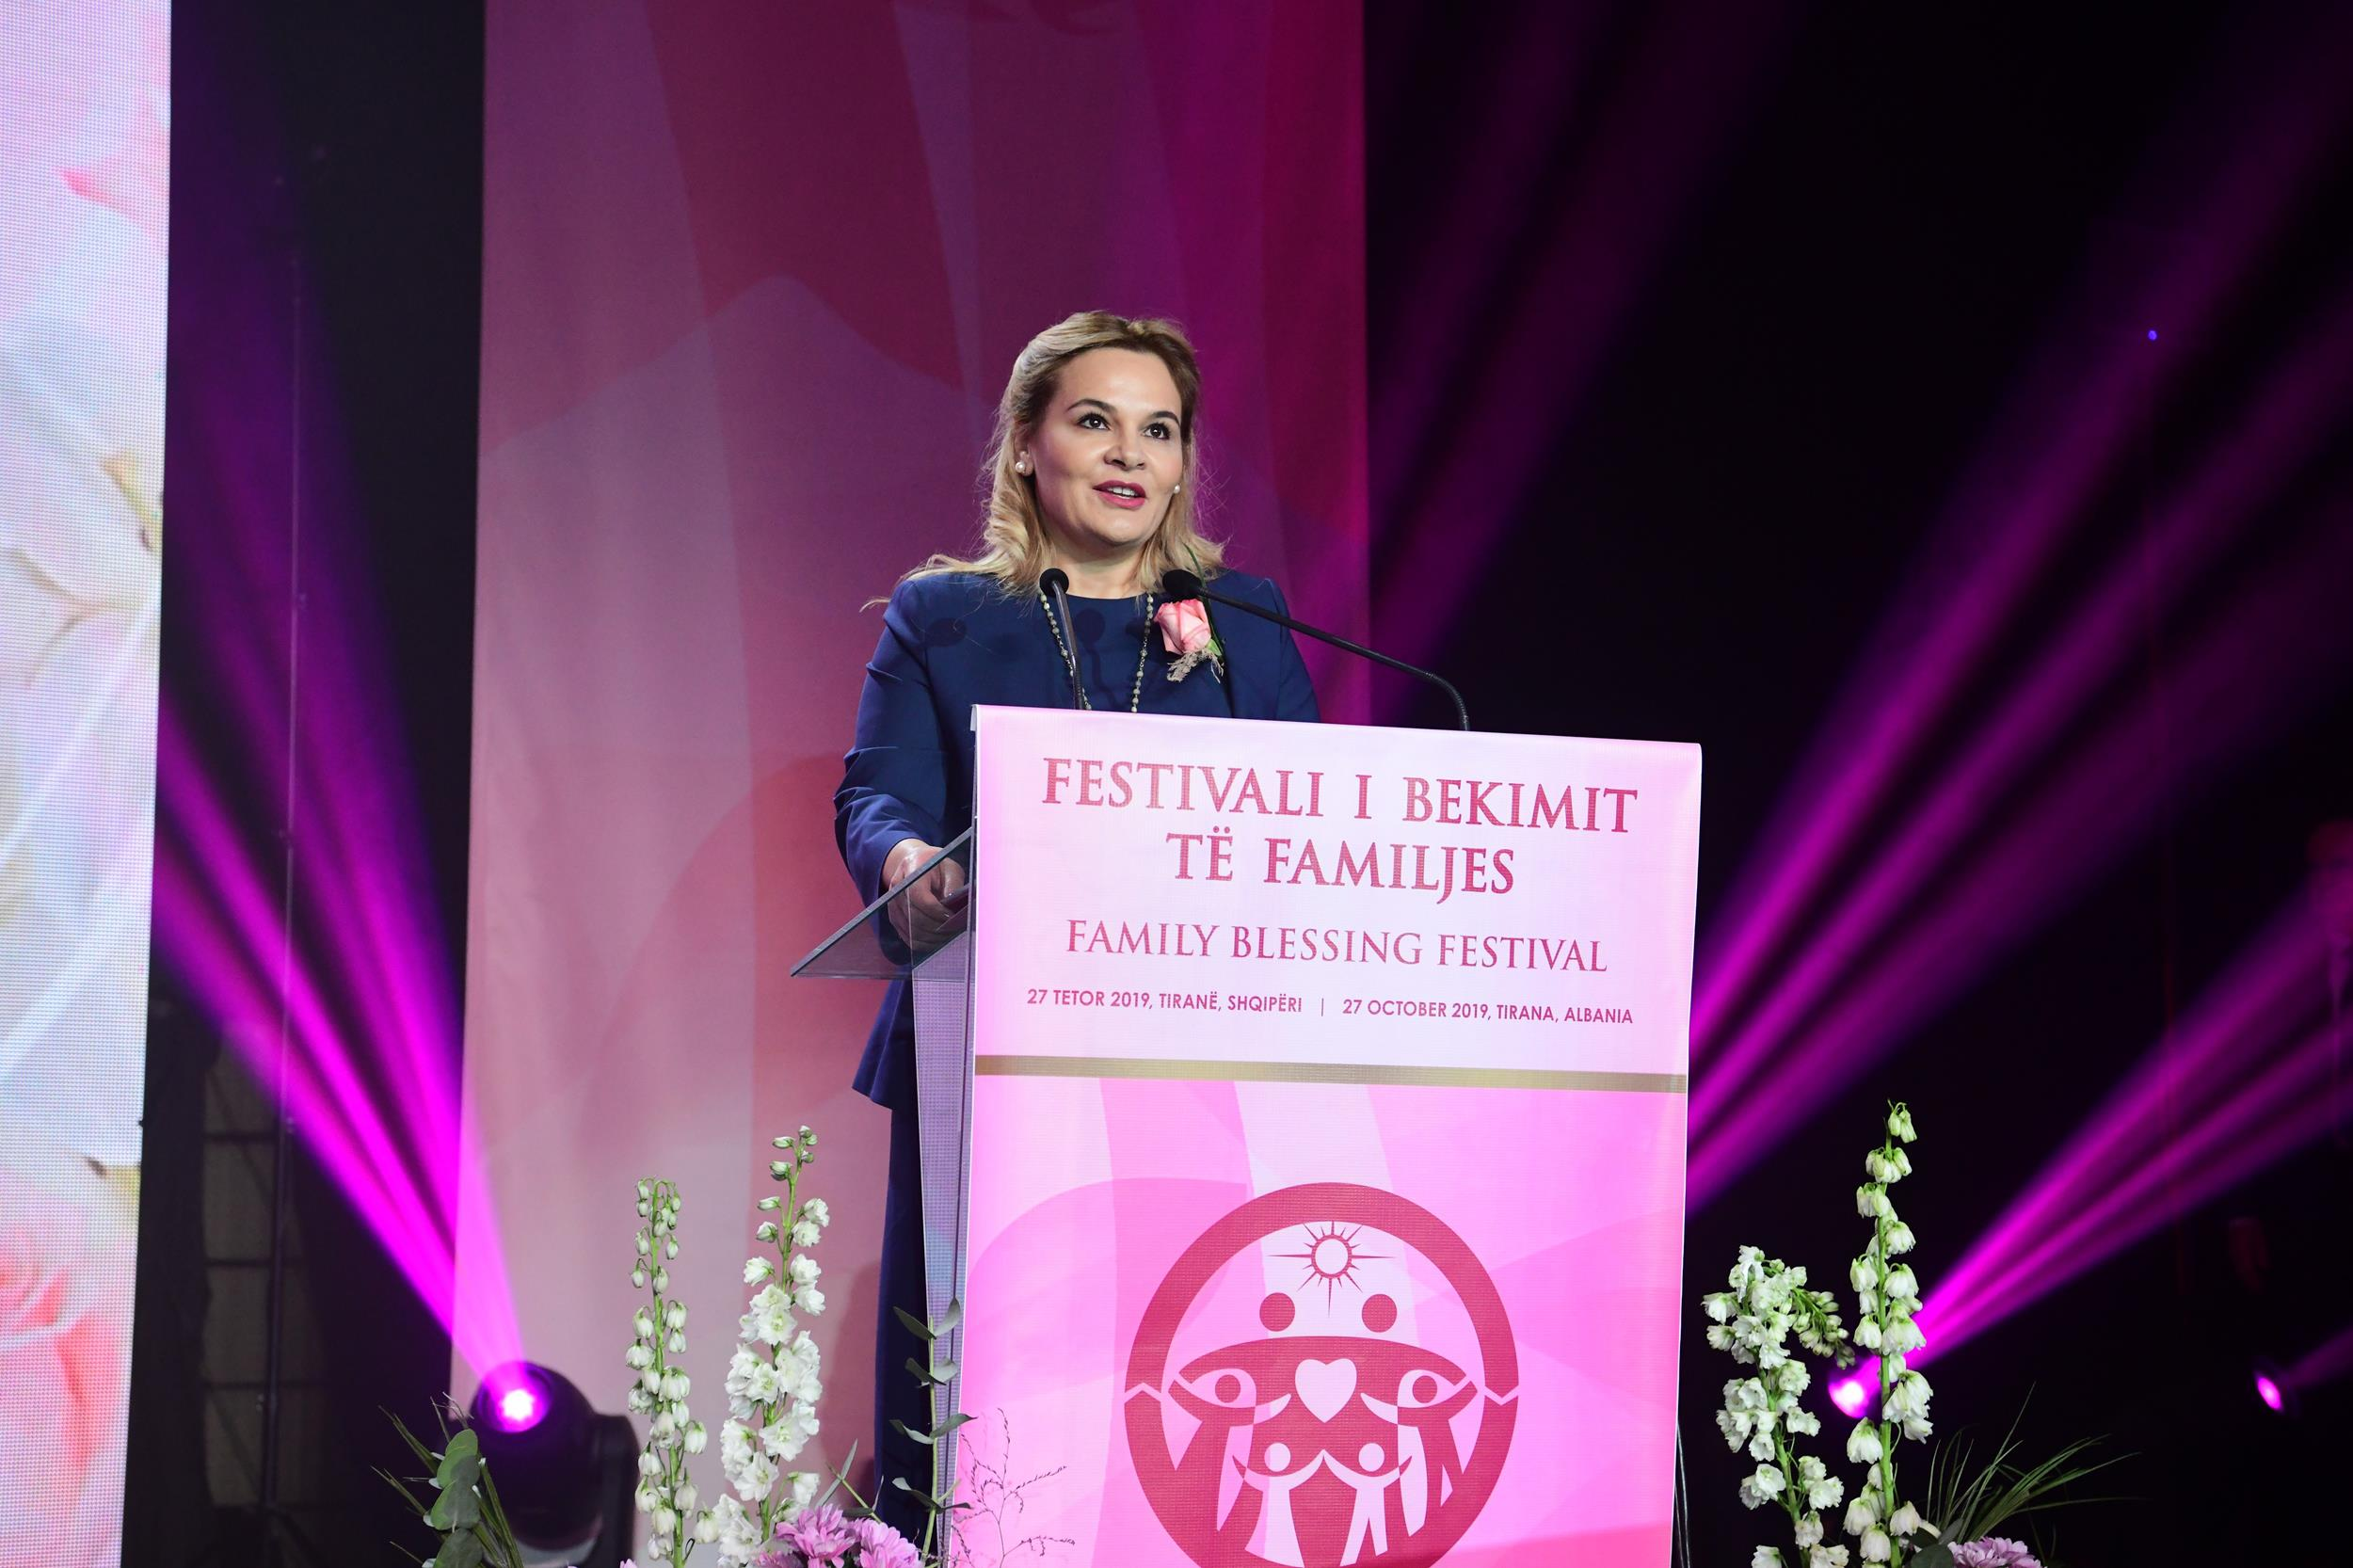 Mrs. Monika Kryemadhi speaks at the Family Blessing Festival